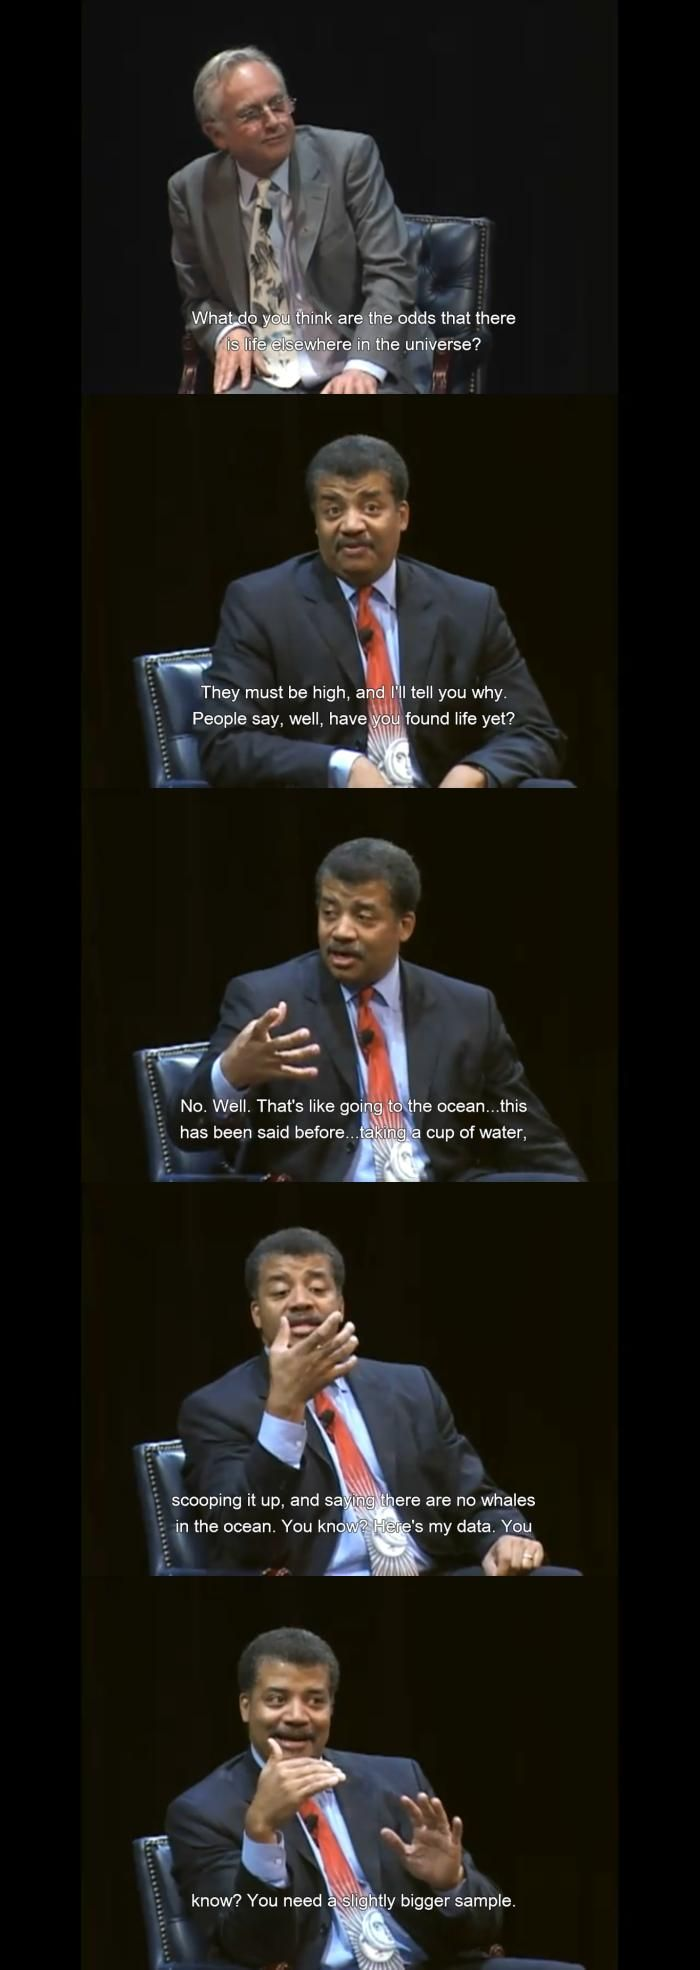 Persuasive Texts/Rhetorical Devices: Argument by analogy. Physicist Neil deGrasse Tyson uses an analogy to explain why although the odds of alien life are so high, we haven't found any evidence.